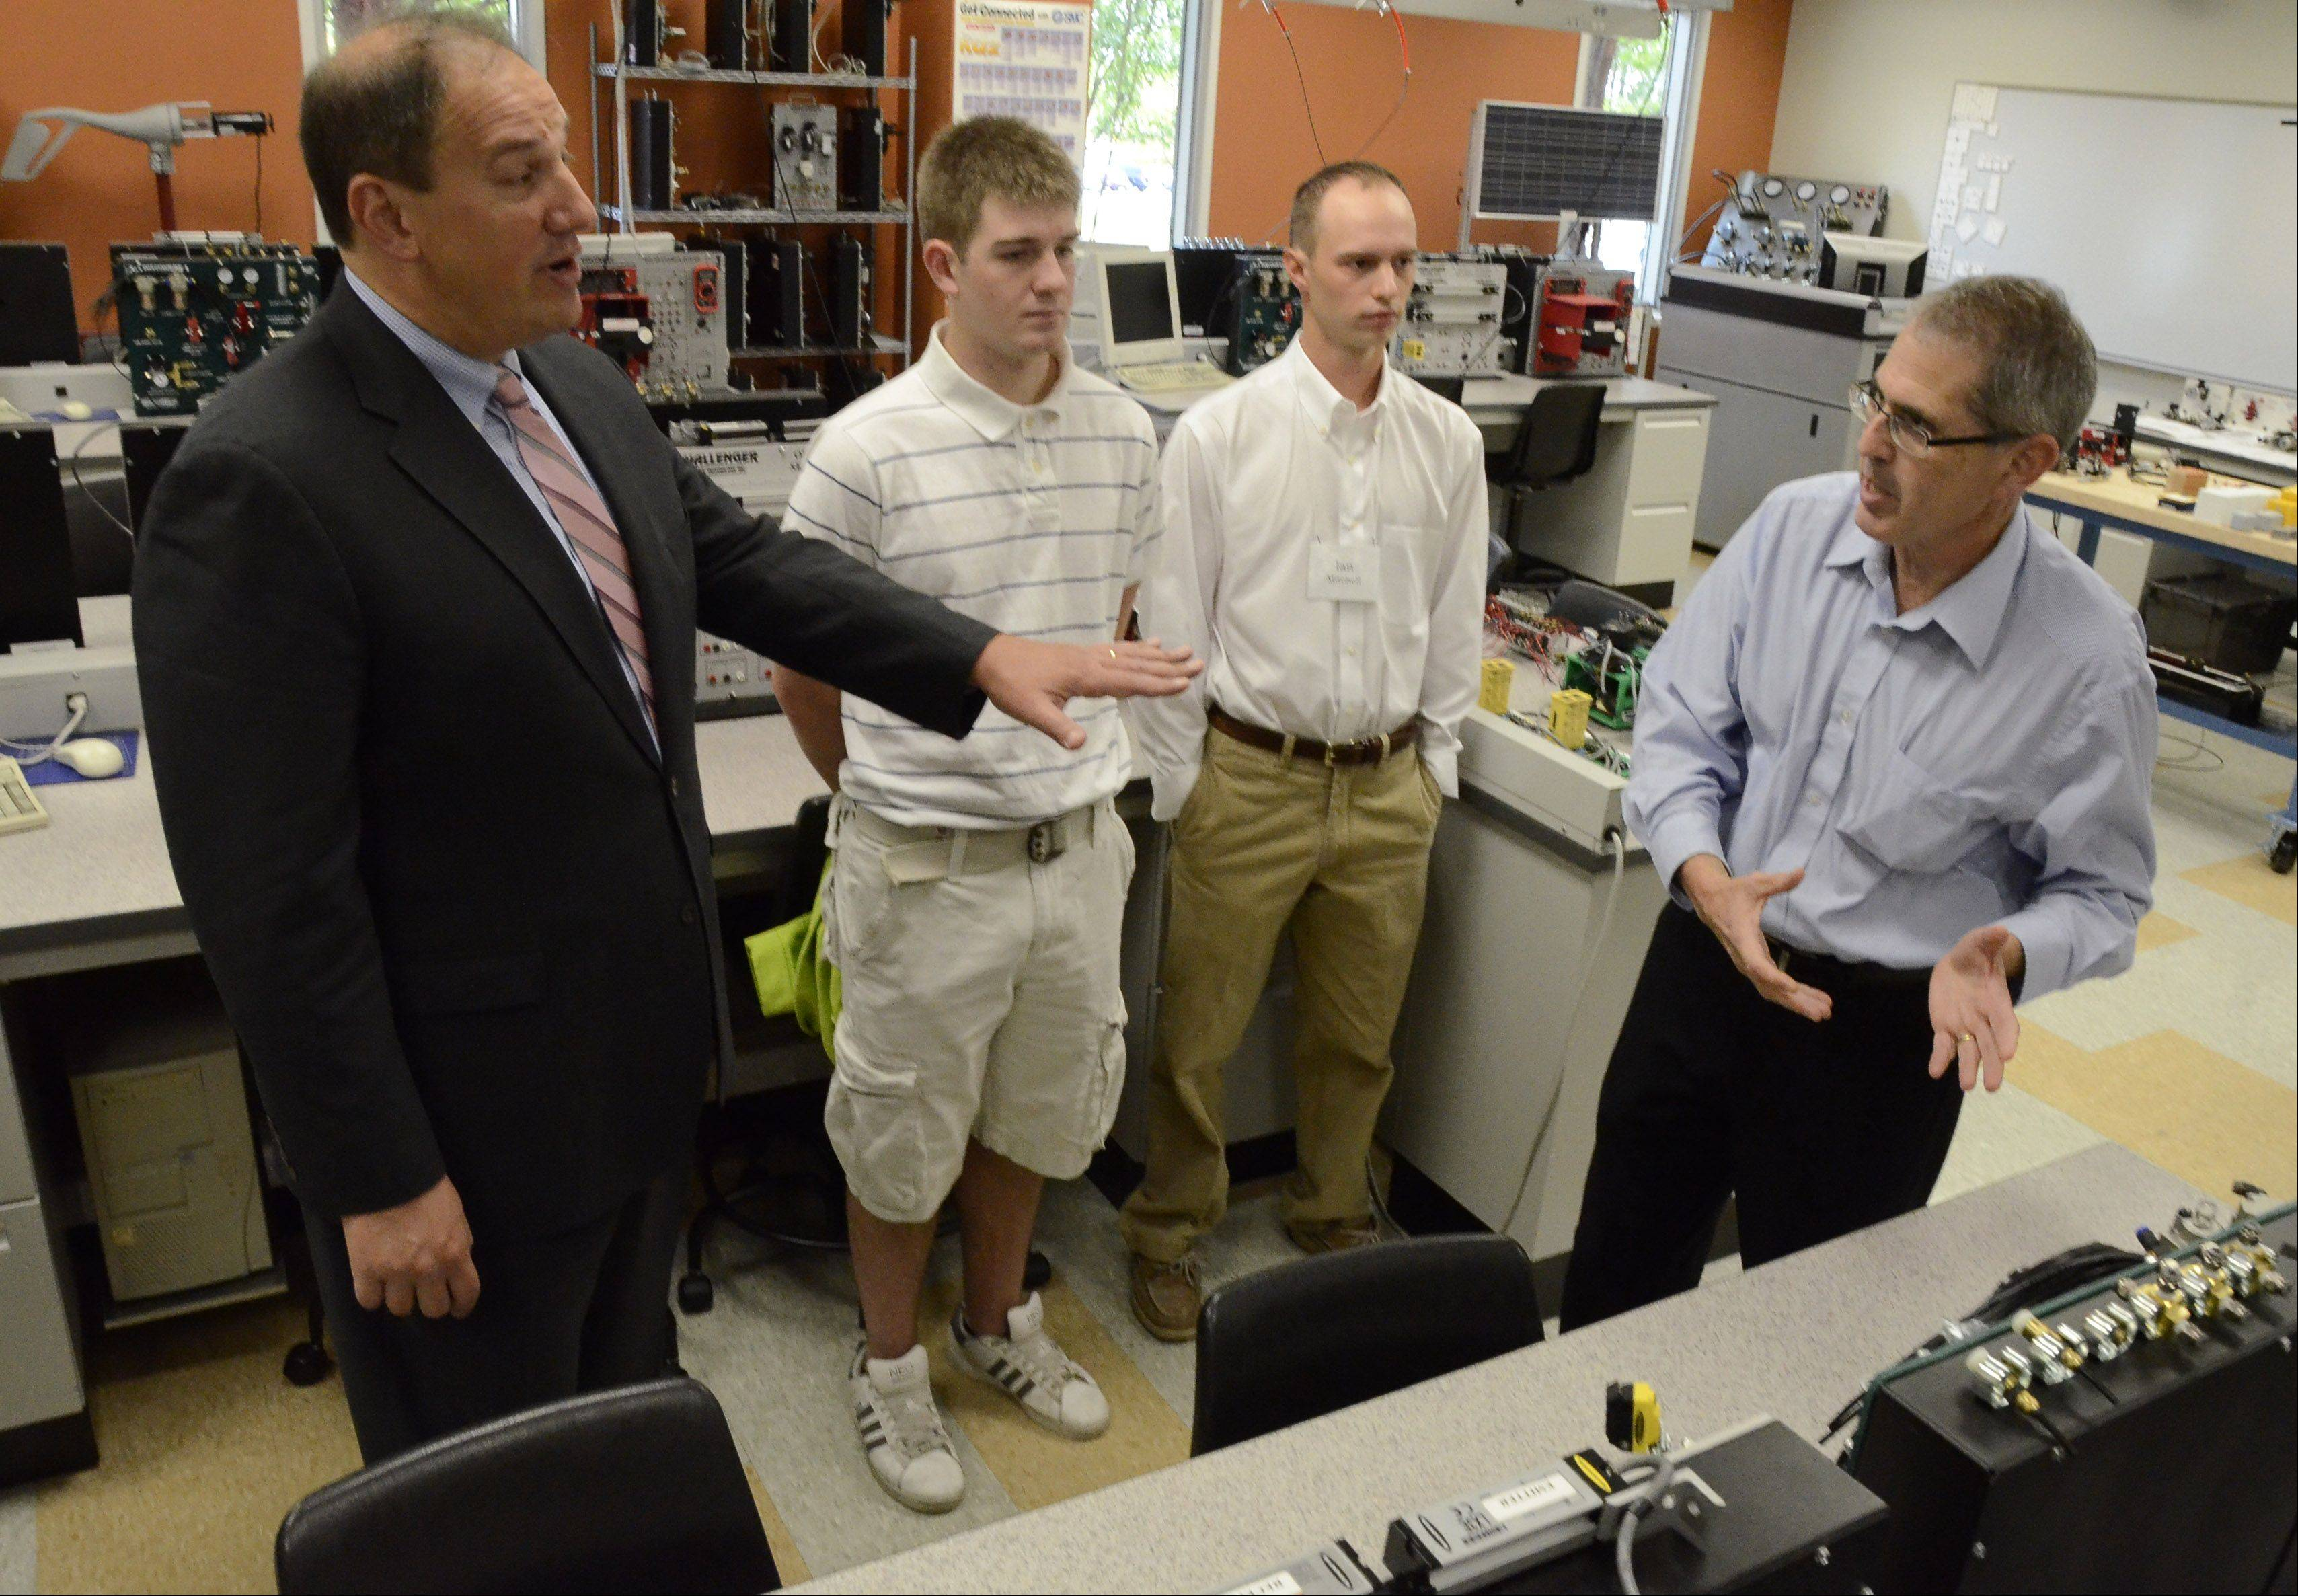 U.S. Department of Labor Deputy Secretary Seth Harris, from left, talks with students Curtis Willuweit of Hoffman Estates, Ian Mitchell of Deer Park and assistant professor Samuel Levenson while visiting one of Harper College�s mechatronics labs.